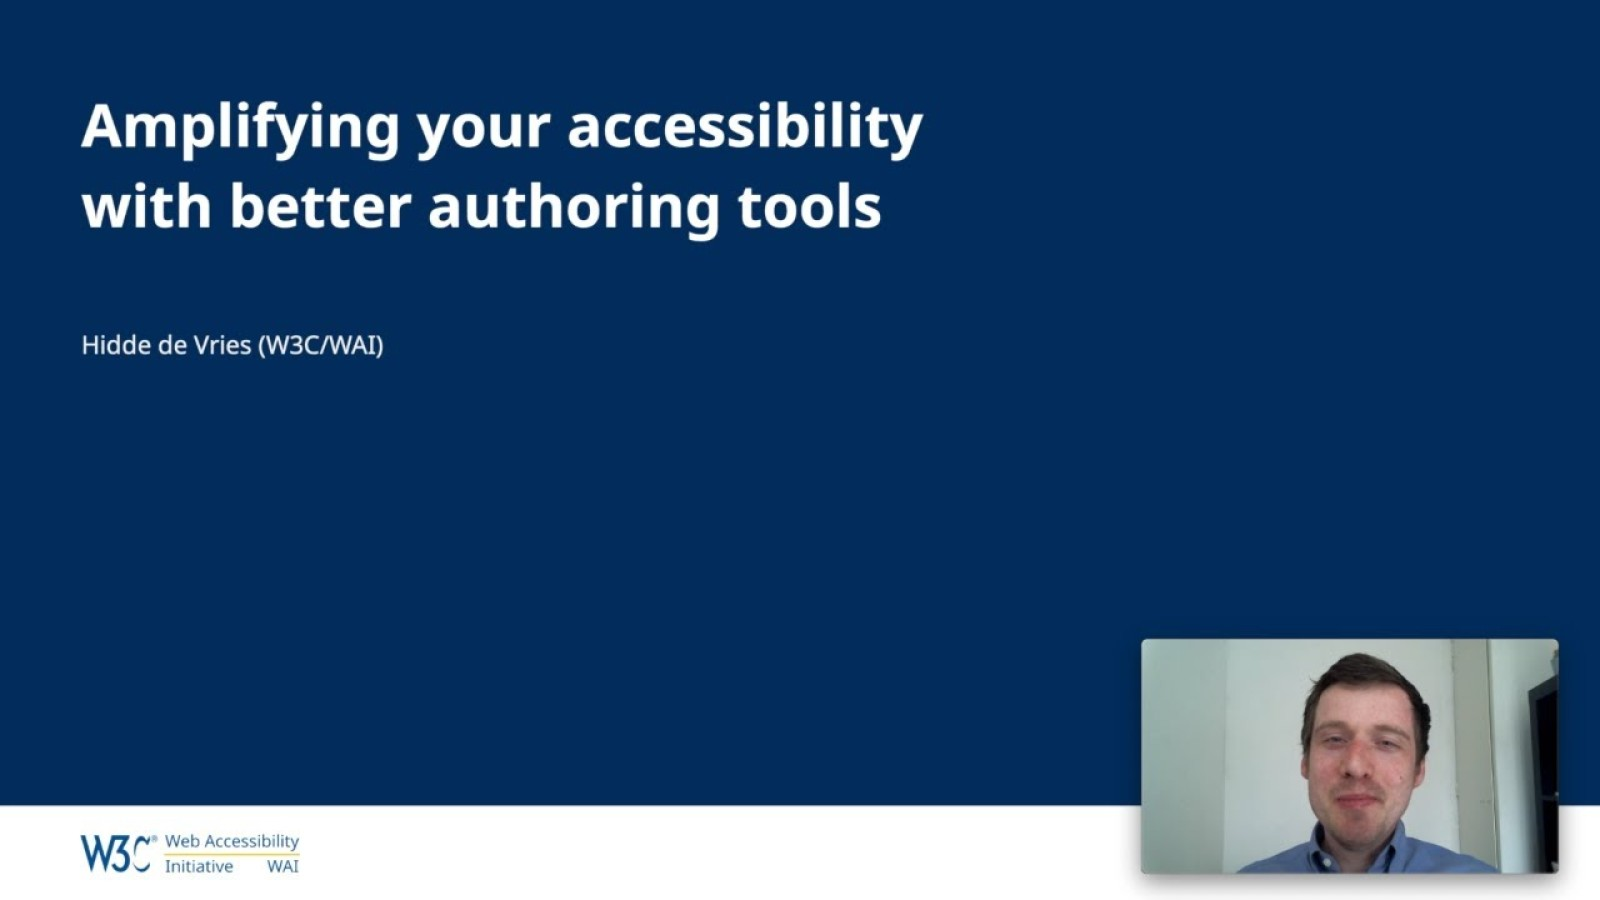 Amplifying your accessibility with better authoring tools